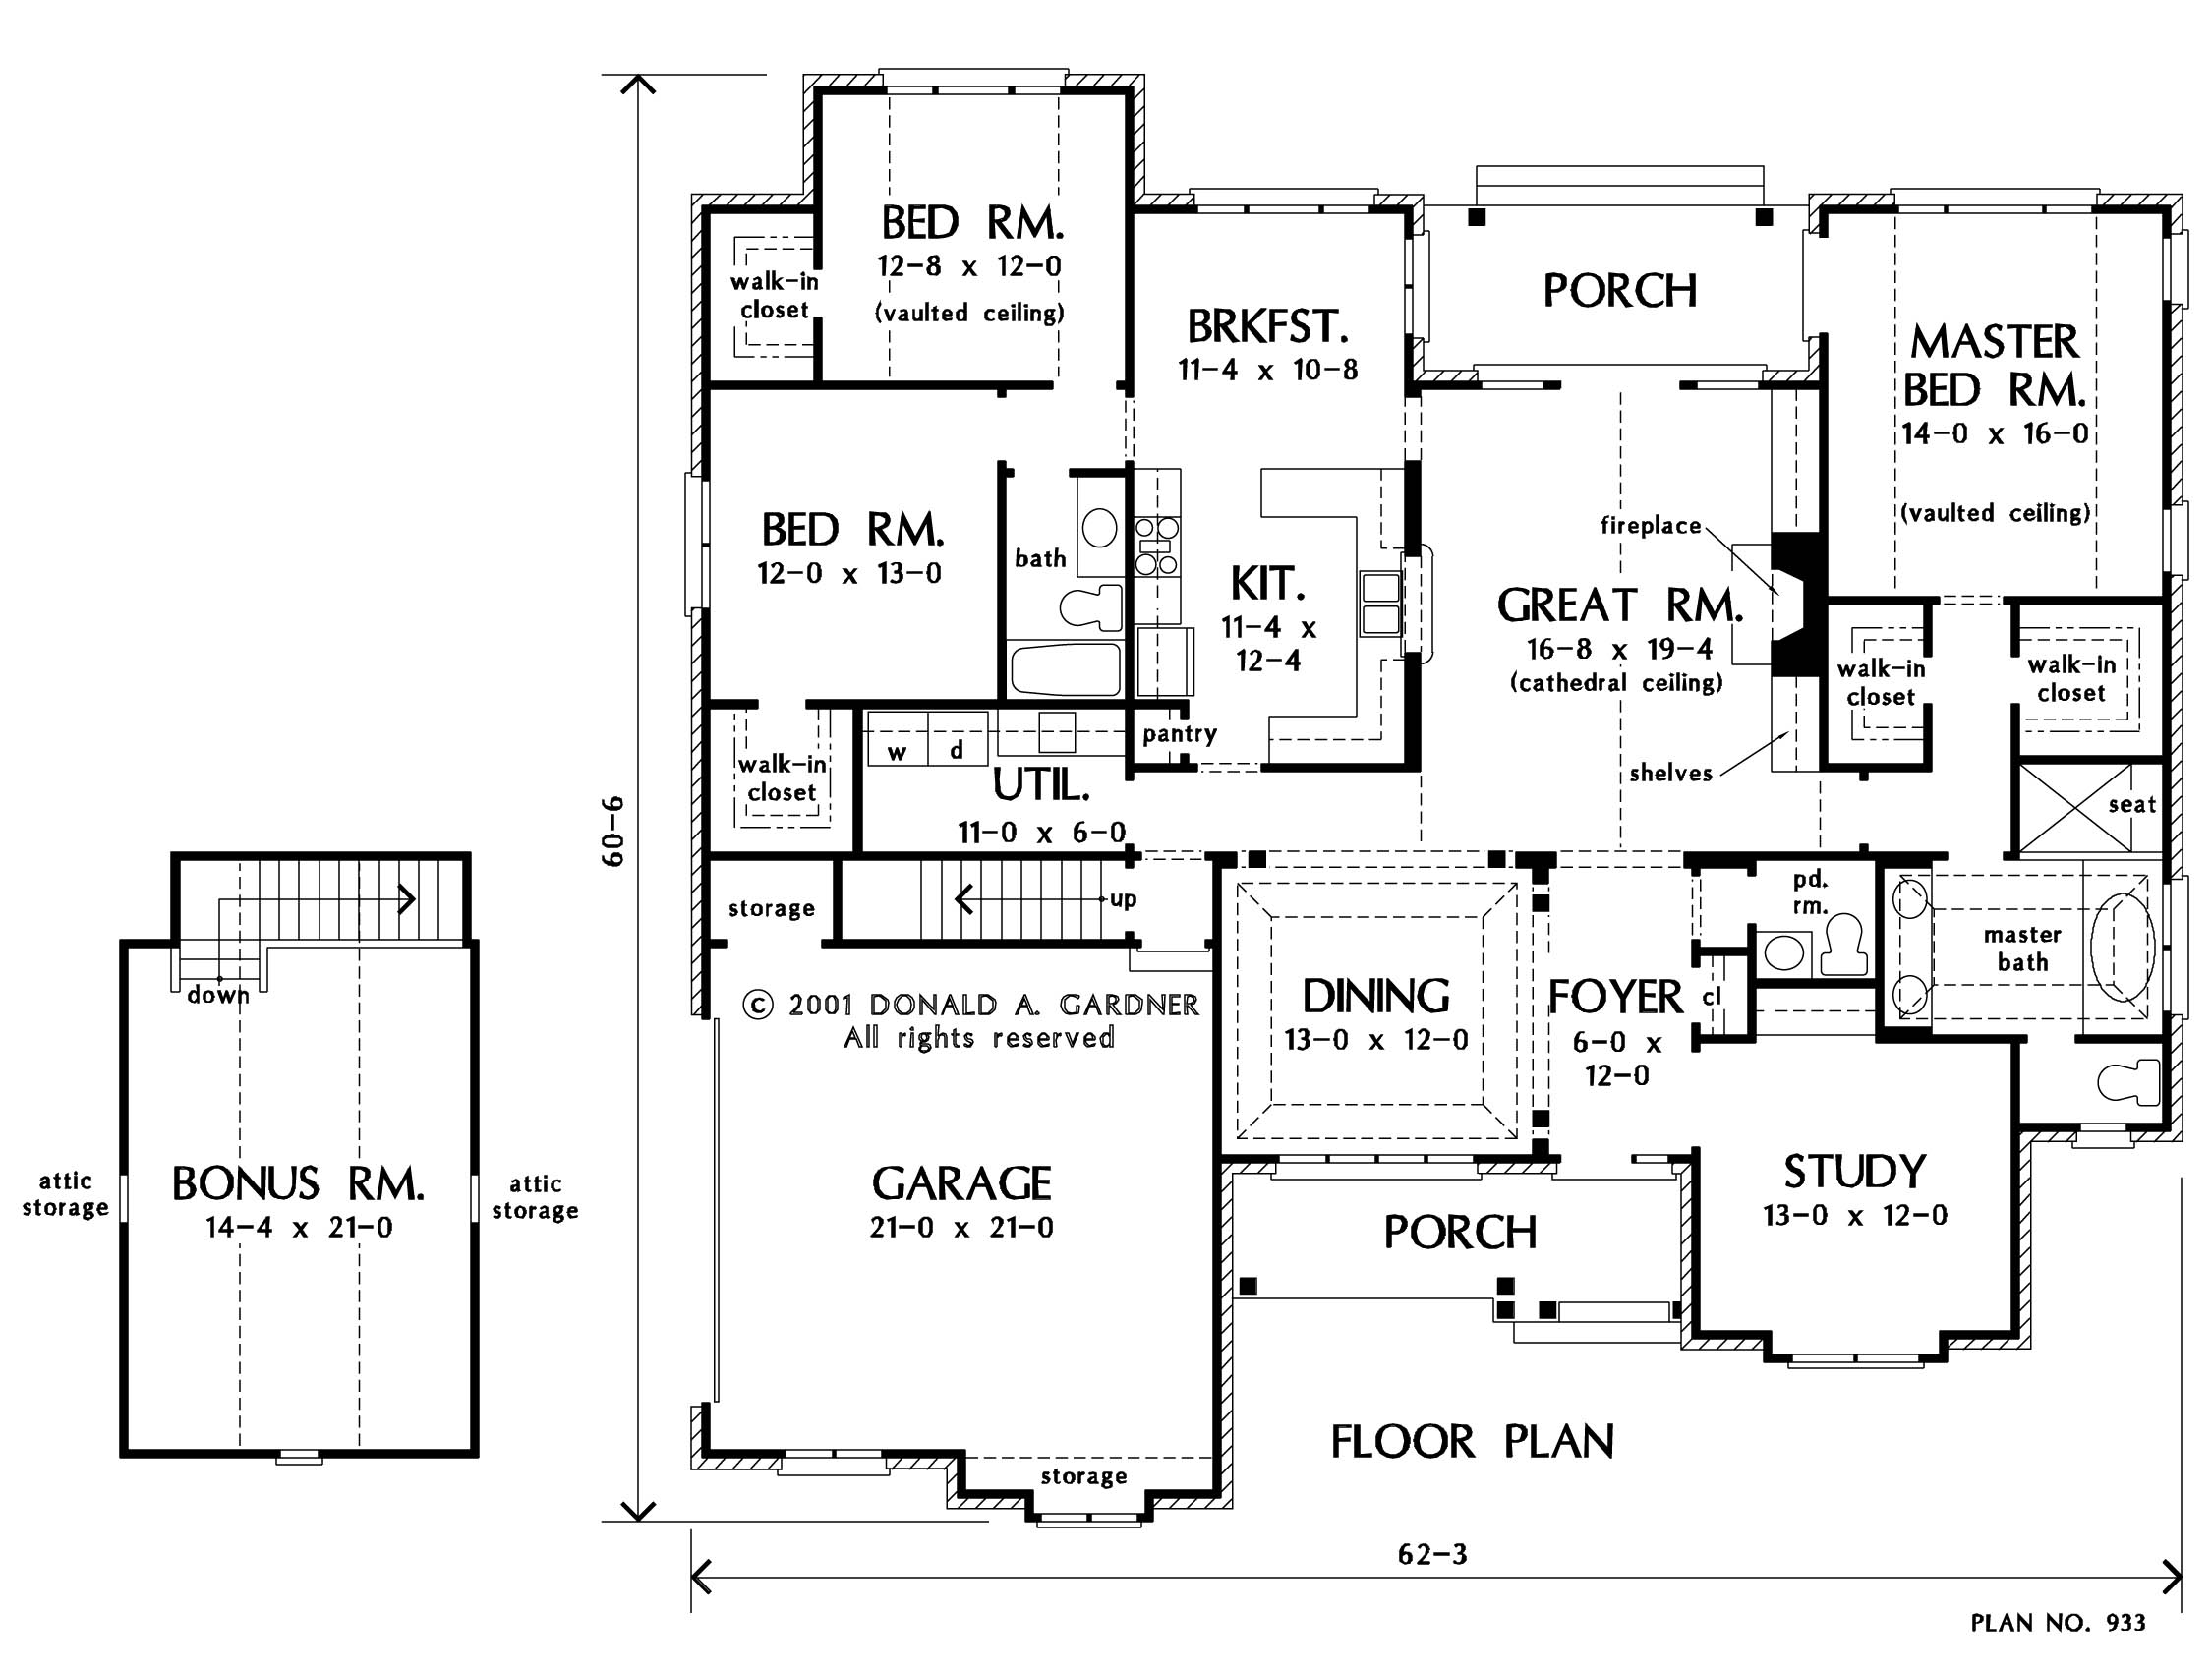 New construction yankton real living carolina property for New home construction plans